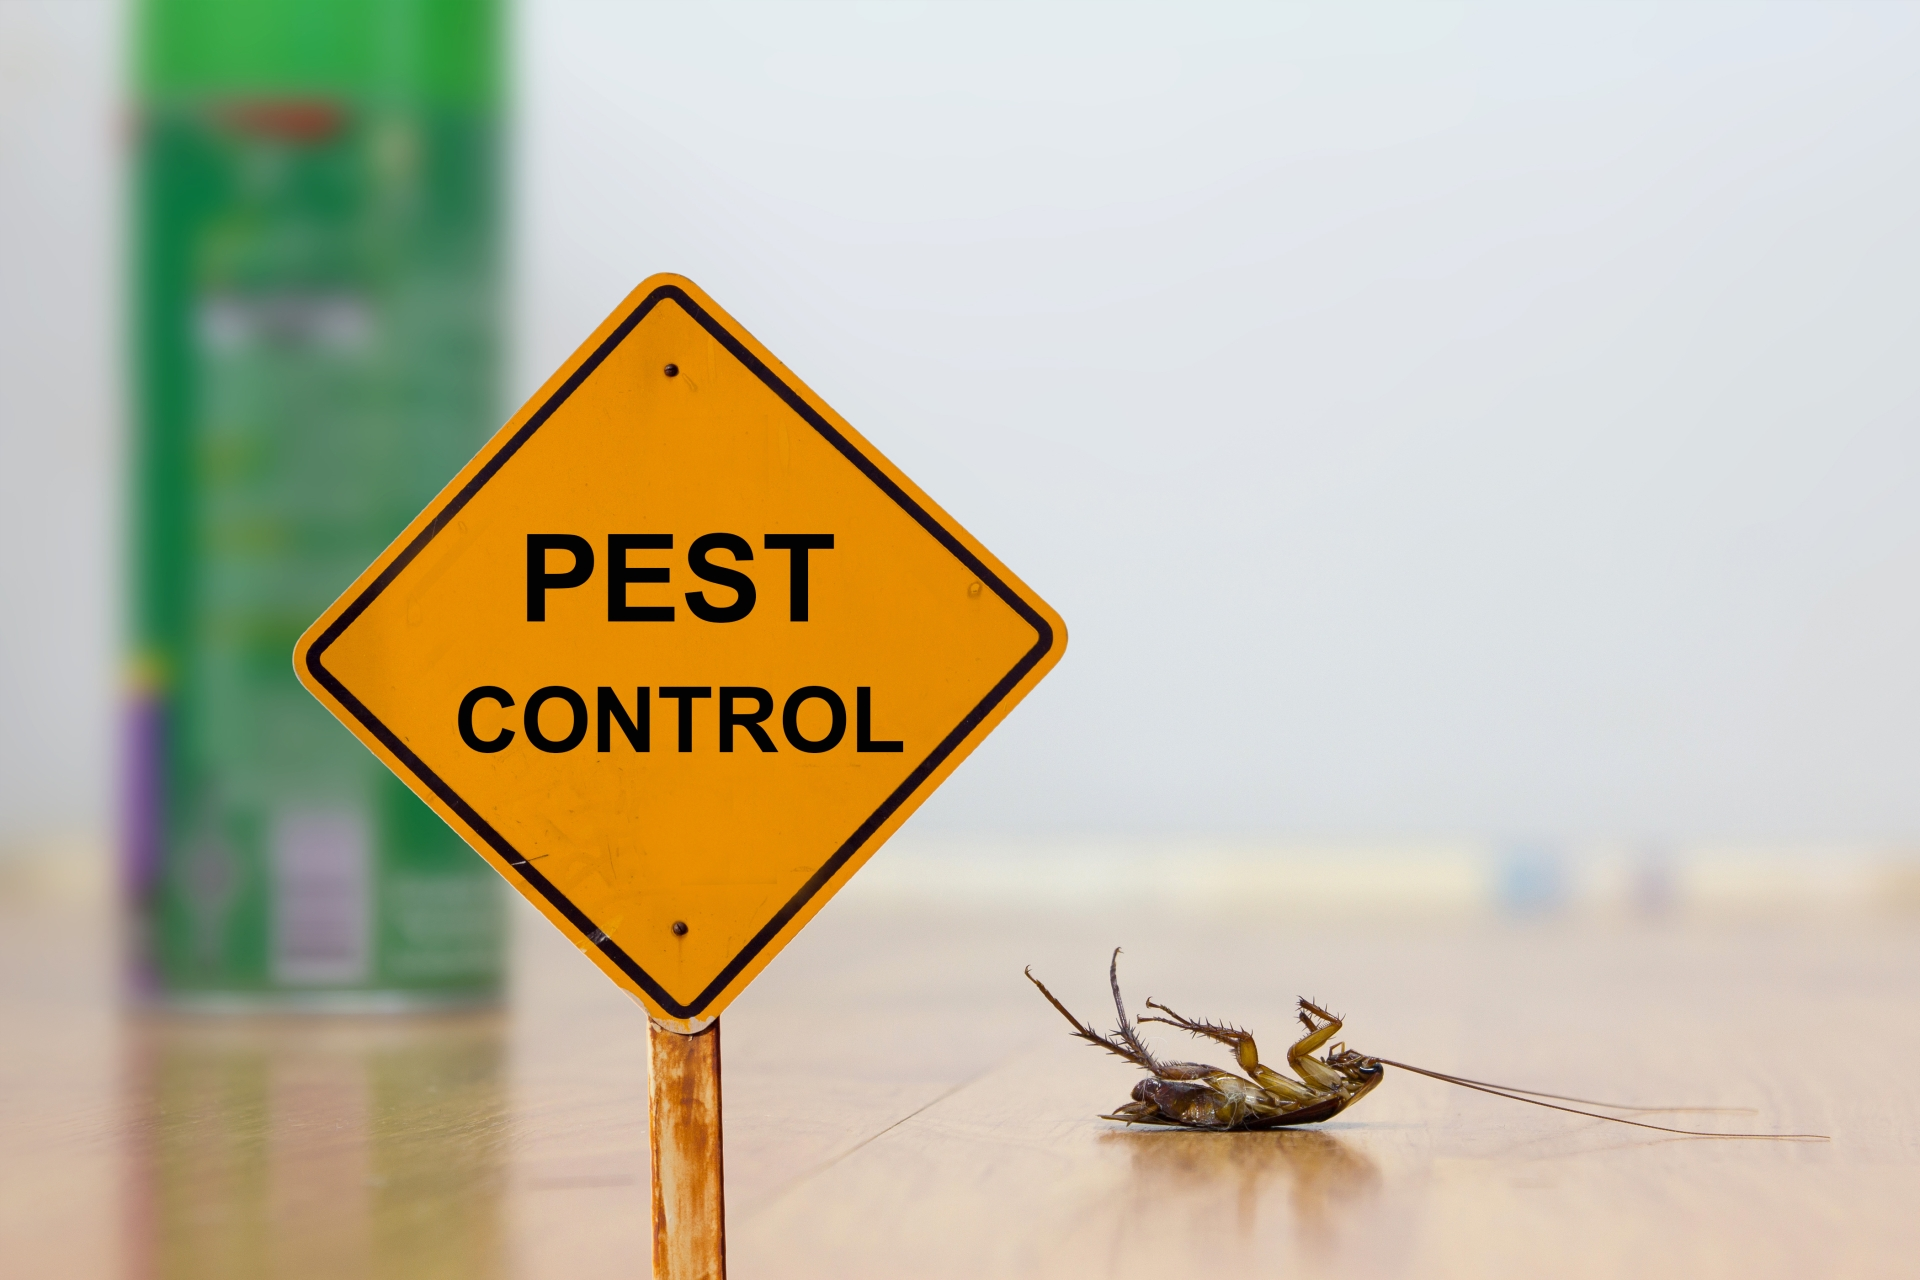 24 Hour Pest Control, Pest Control in Shepperton, Upper Halliford, TW17. Call Now 020 8166 9746